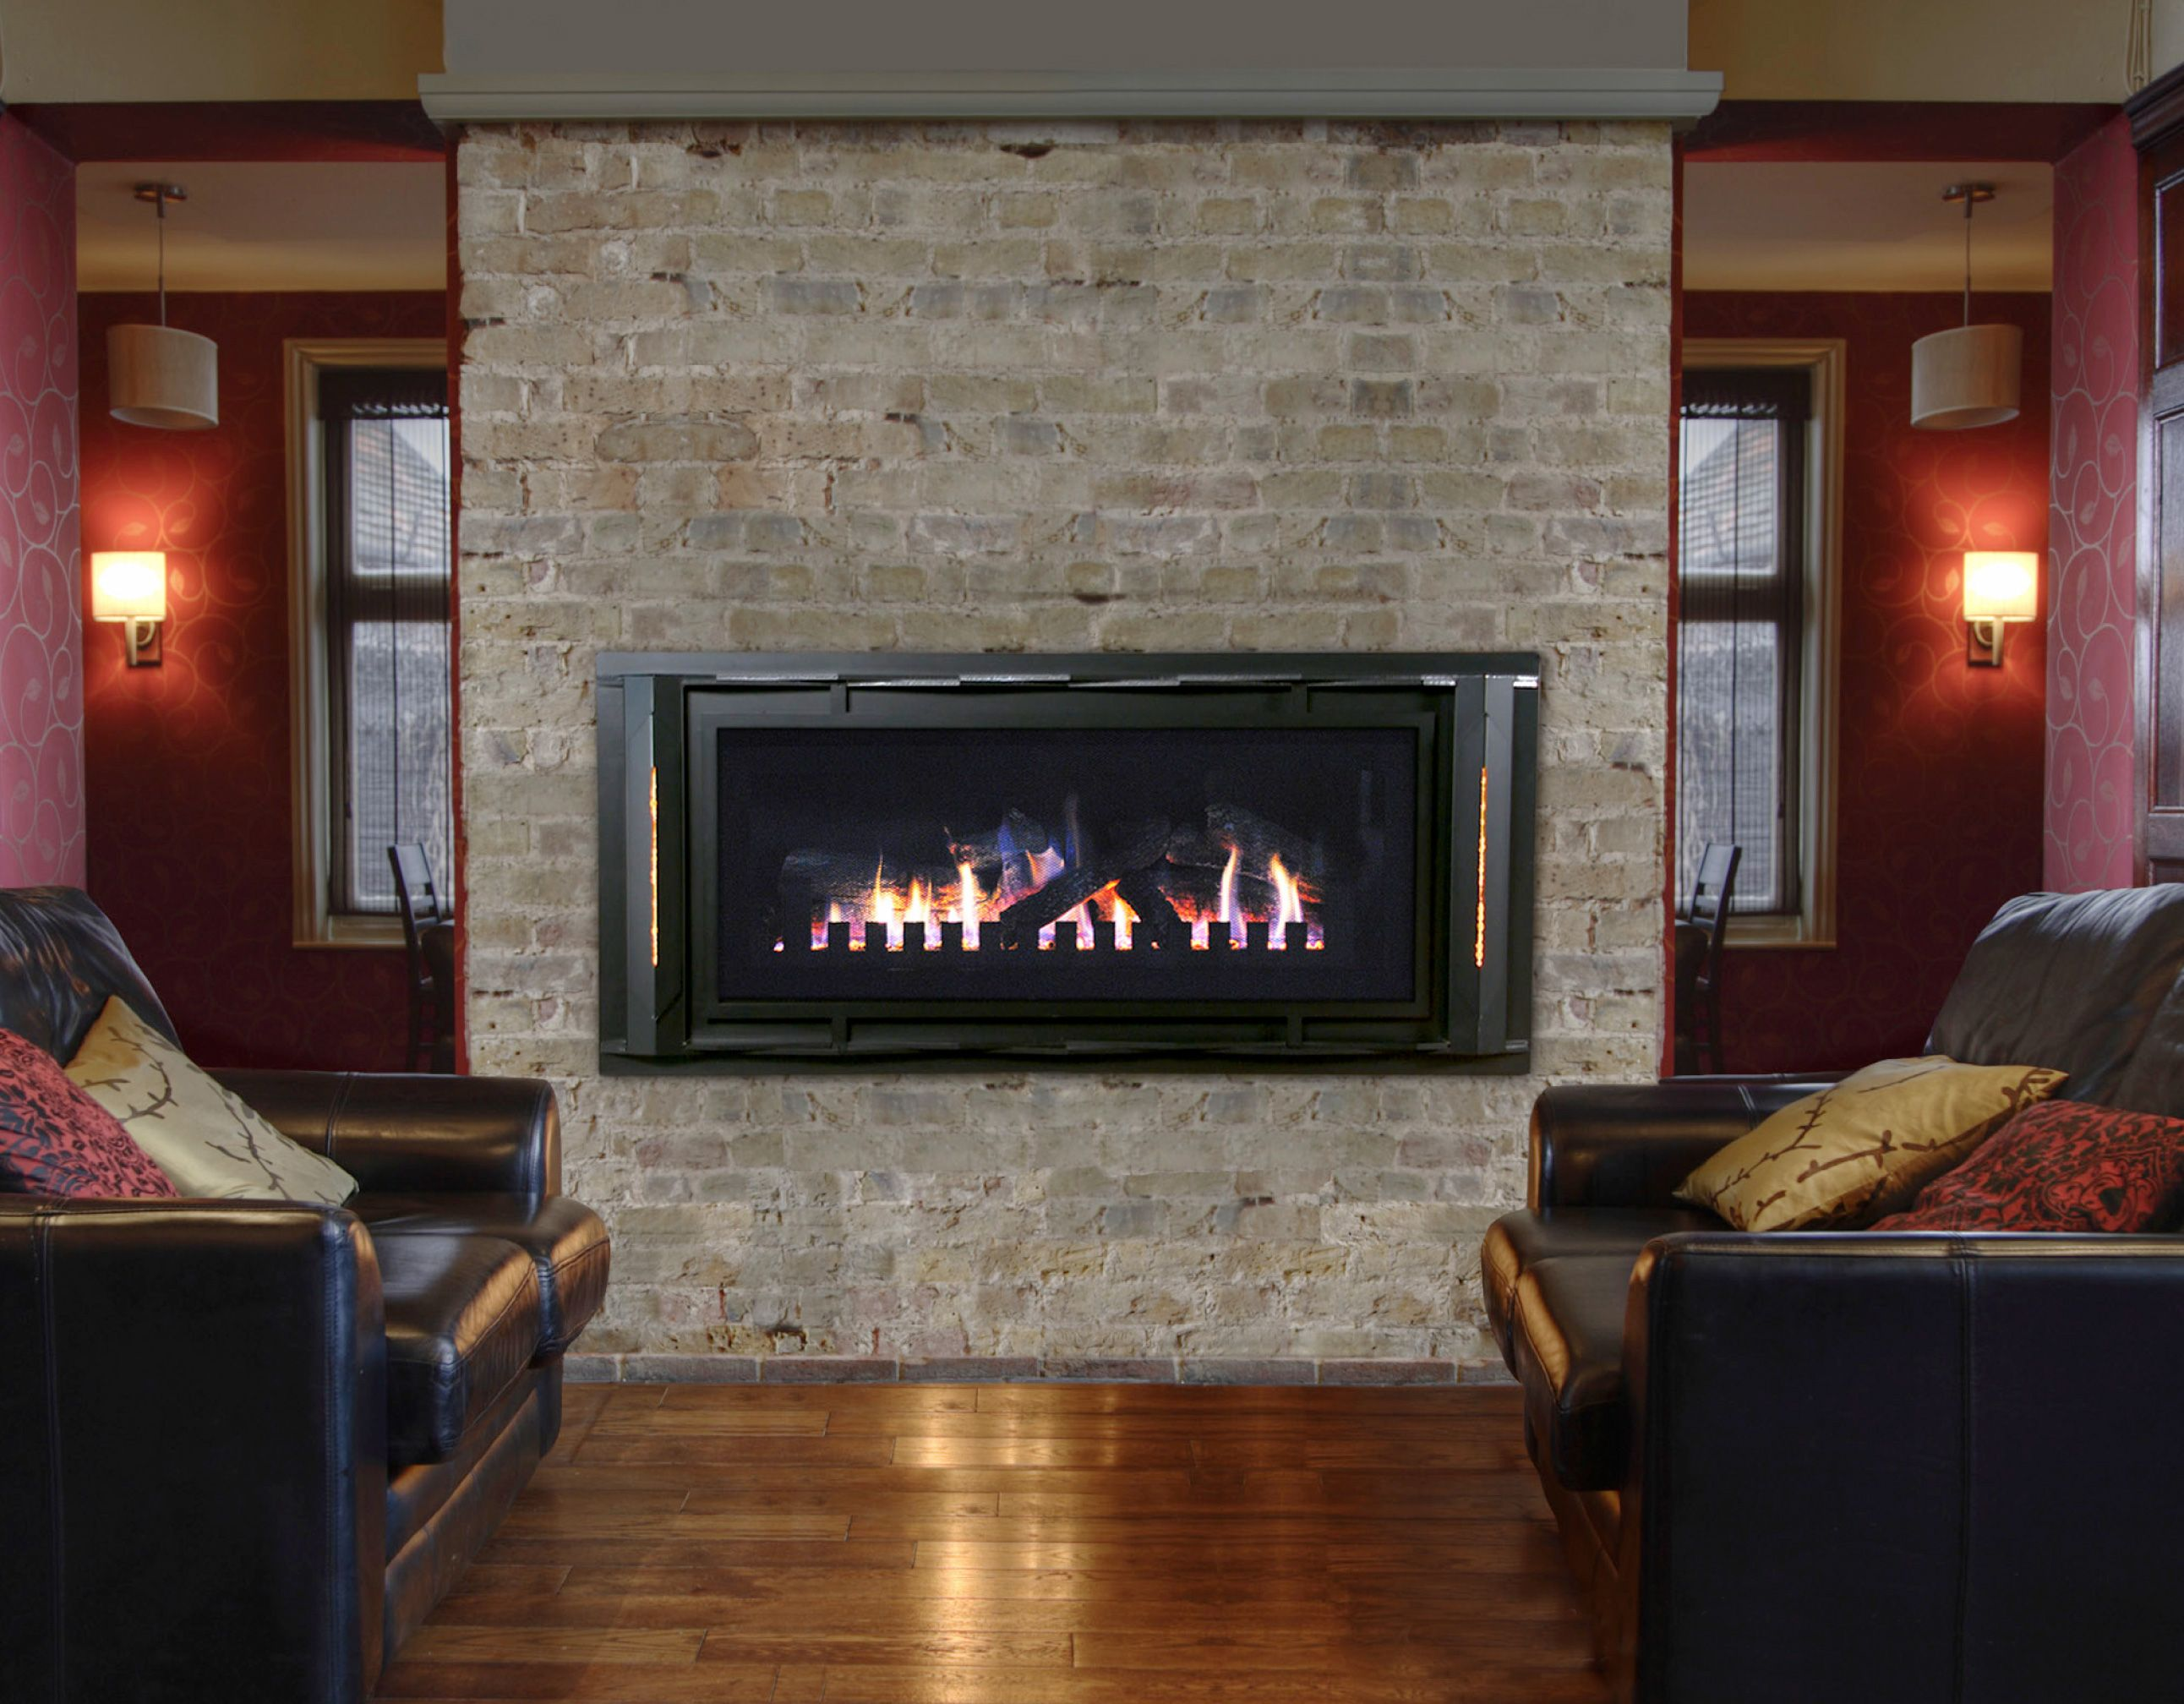 Linear gas fireplaces like this stellar cml 58 are a great for Linear fireplace ideas